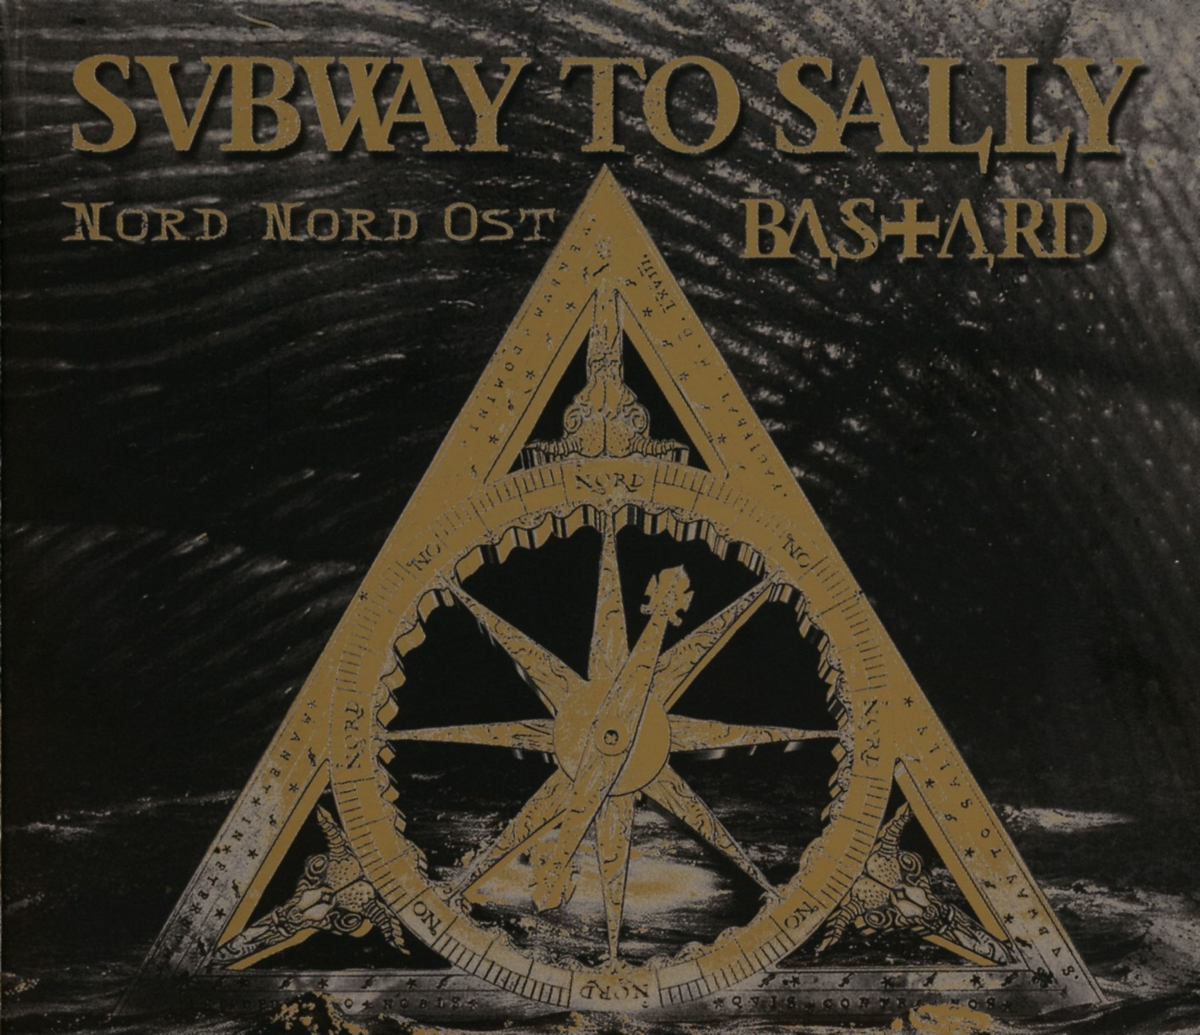 subway to sally nord nord ost